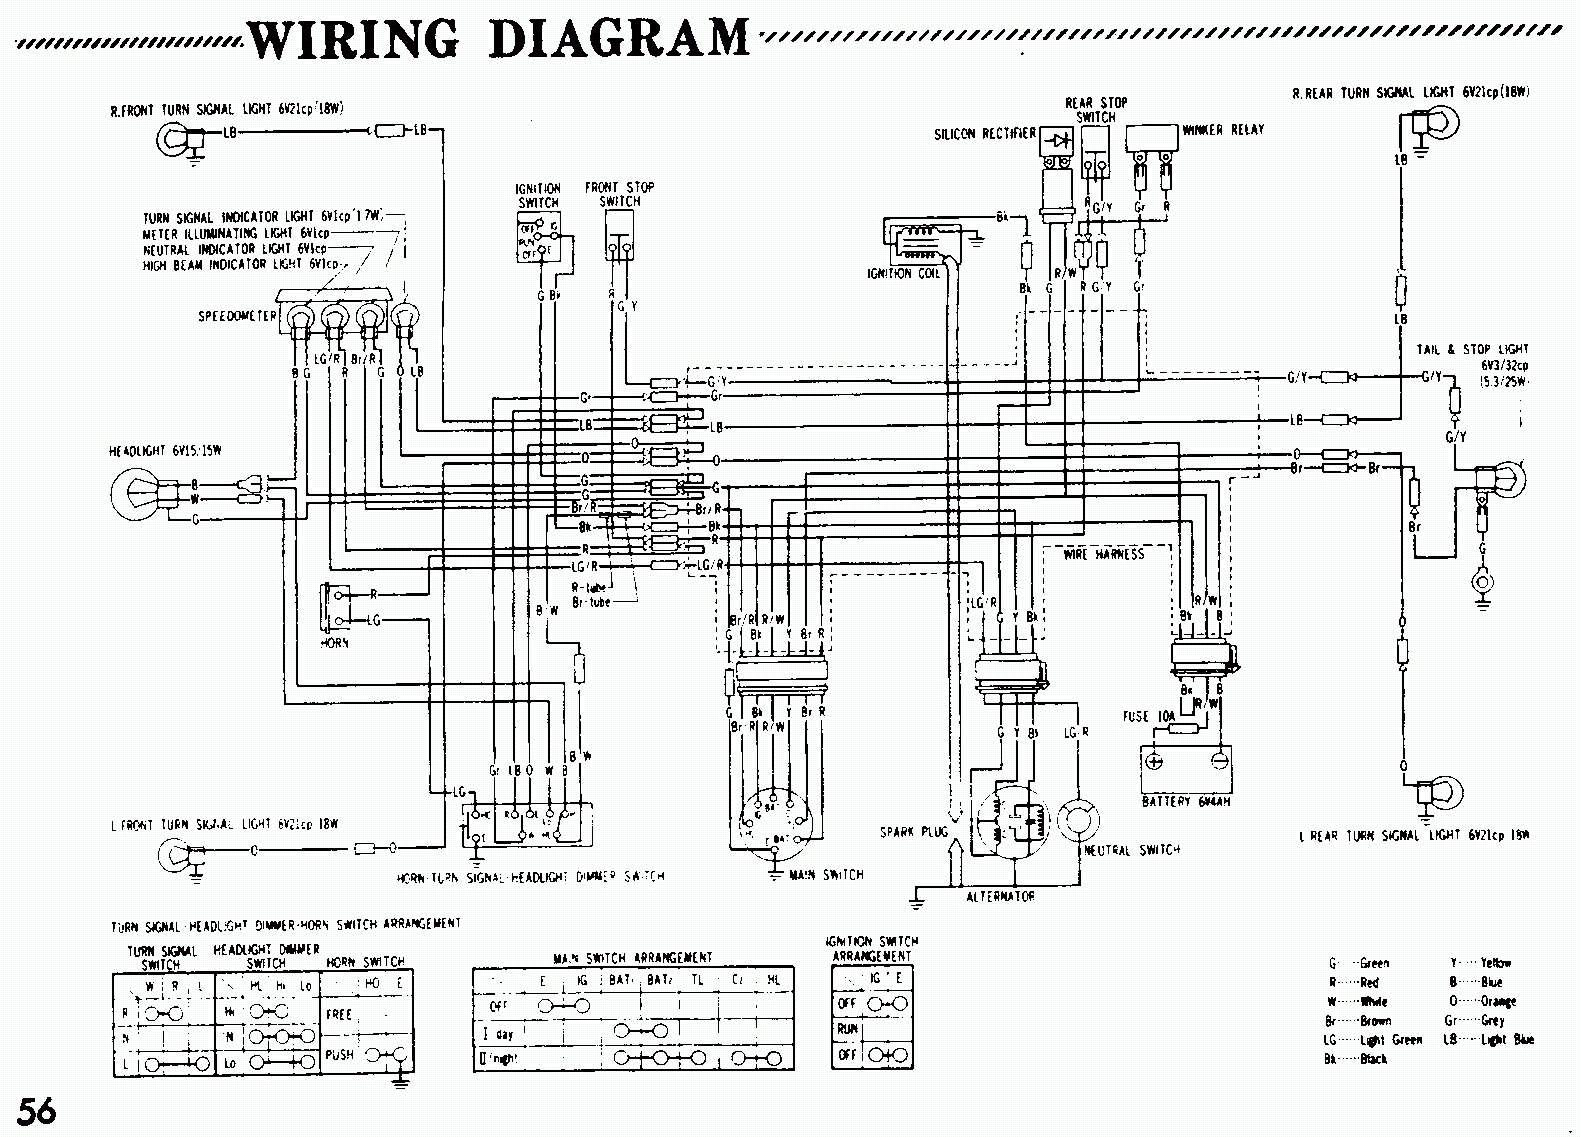 klx 110 wiring diagram wiring library Tao Tao 125 ATV Wiring Diagram a high quality ct70 and clone engine wiring diagram is available at